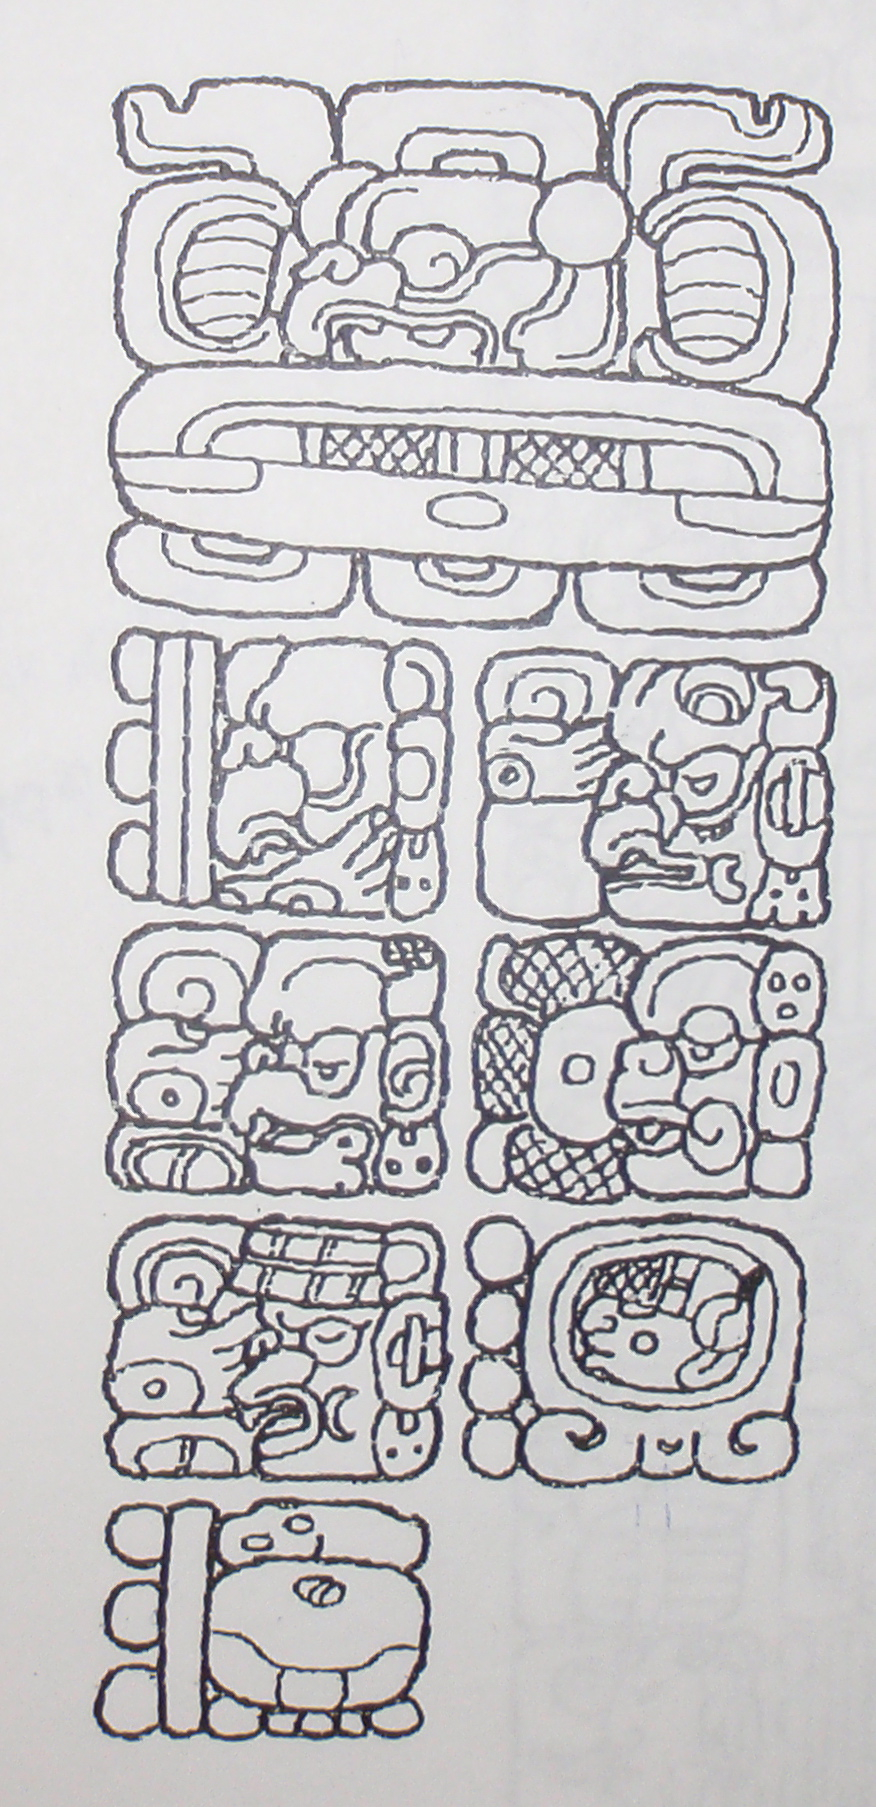 Read Mayan Hieroglyphics! | The Floating Troubadour Regarding Reading A Mayan Calendar